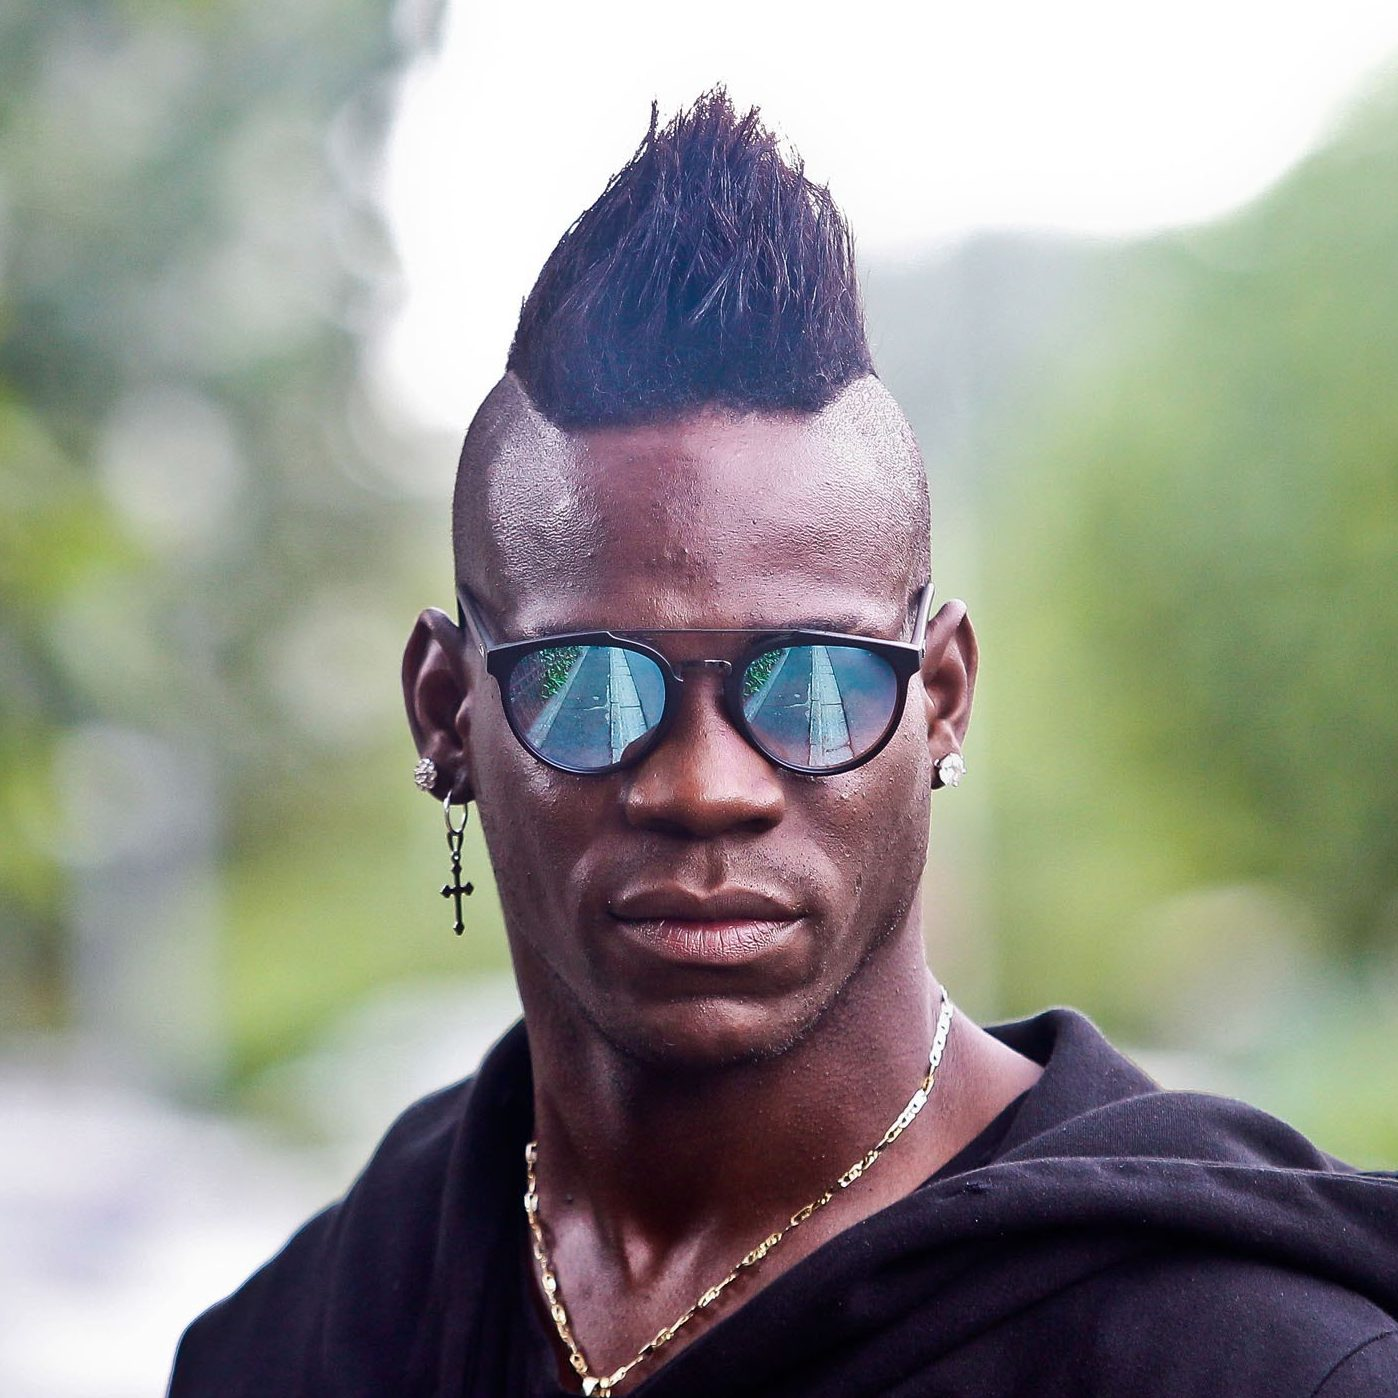 Ligue 1 Club Nice And Italy National Team Striker Mario Balotellis Signature Look Is The Mohawk Whether Its A Tiny Wide Curly Or Straight